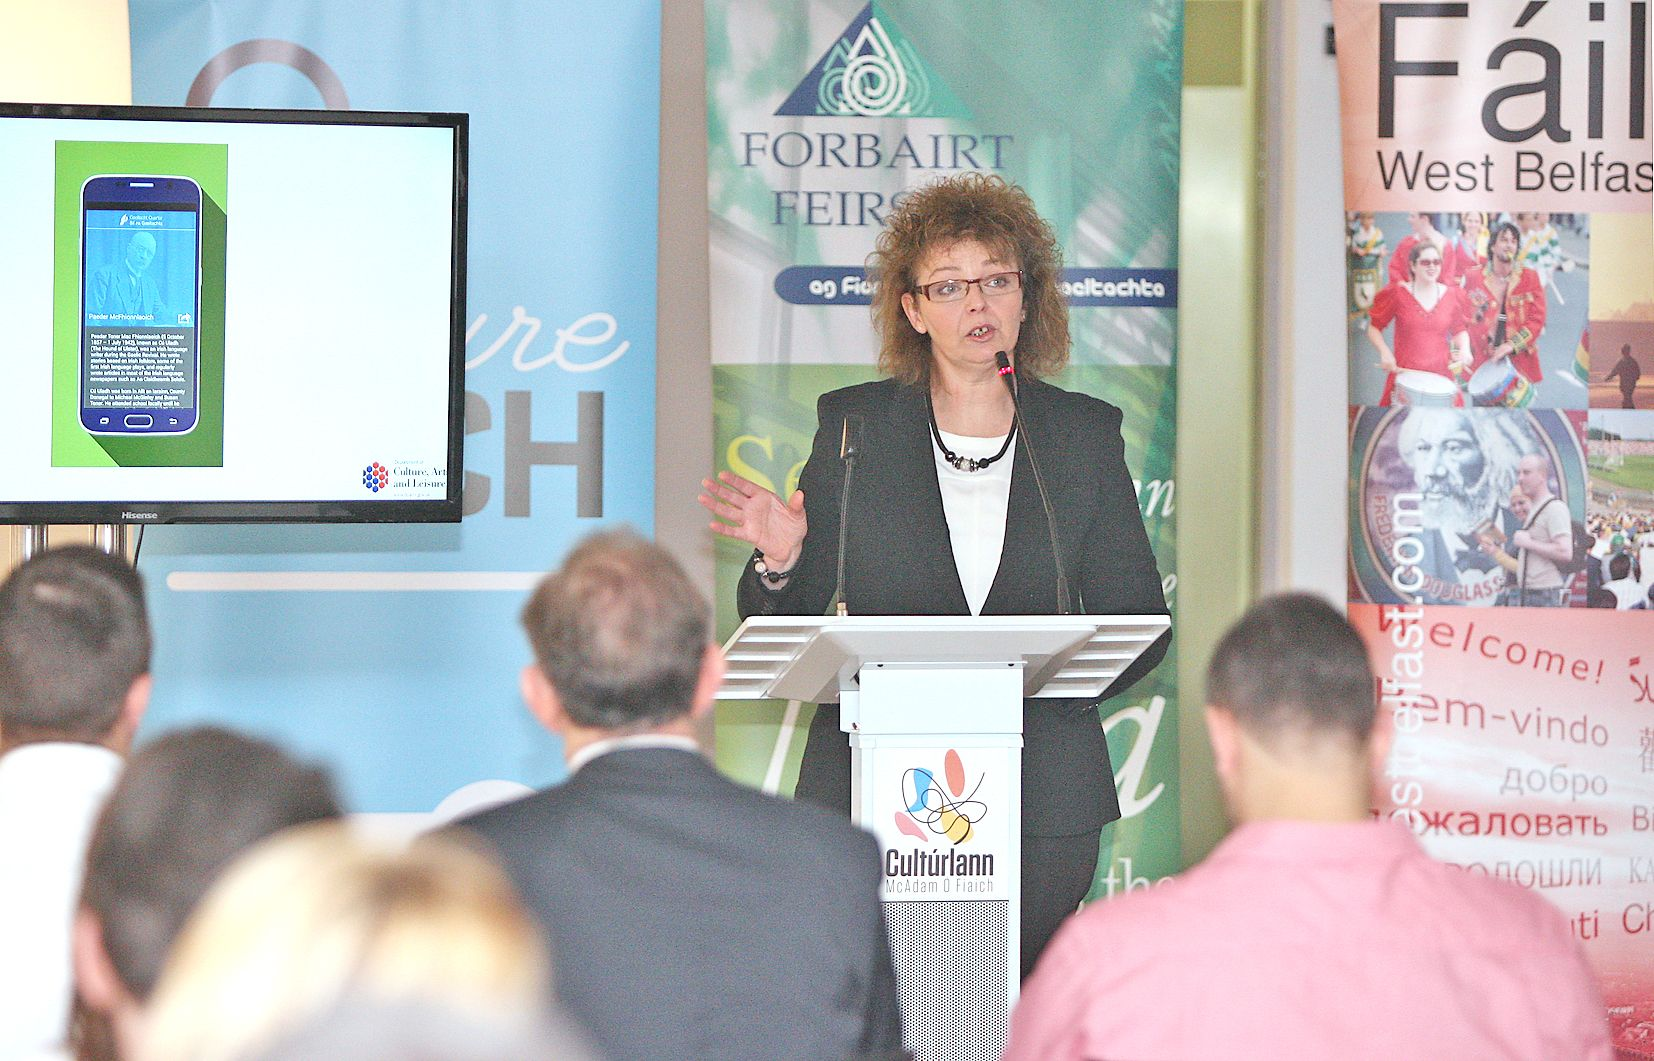 ""\""""MEANINGFUL"""": Minister Carál Ní Chuilín's announcement on housing could be a game-changer""1654|1061|?|en|2|bea30e7ff763a55ebba4cca06f07aaa9|False|UNLIKELY|0.28583085536956787